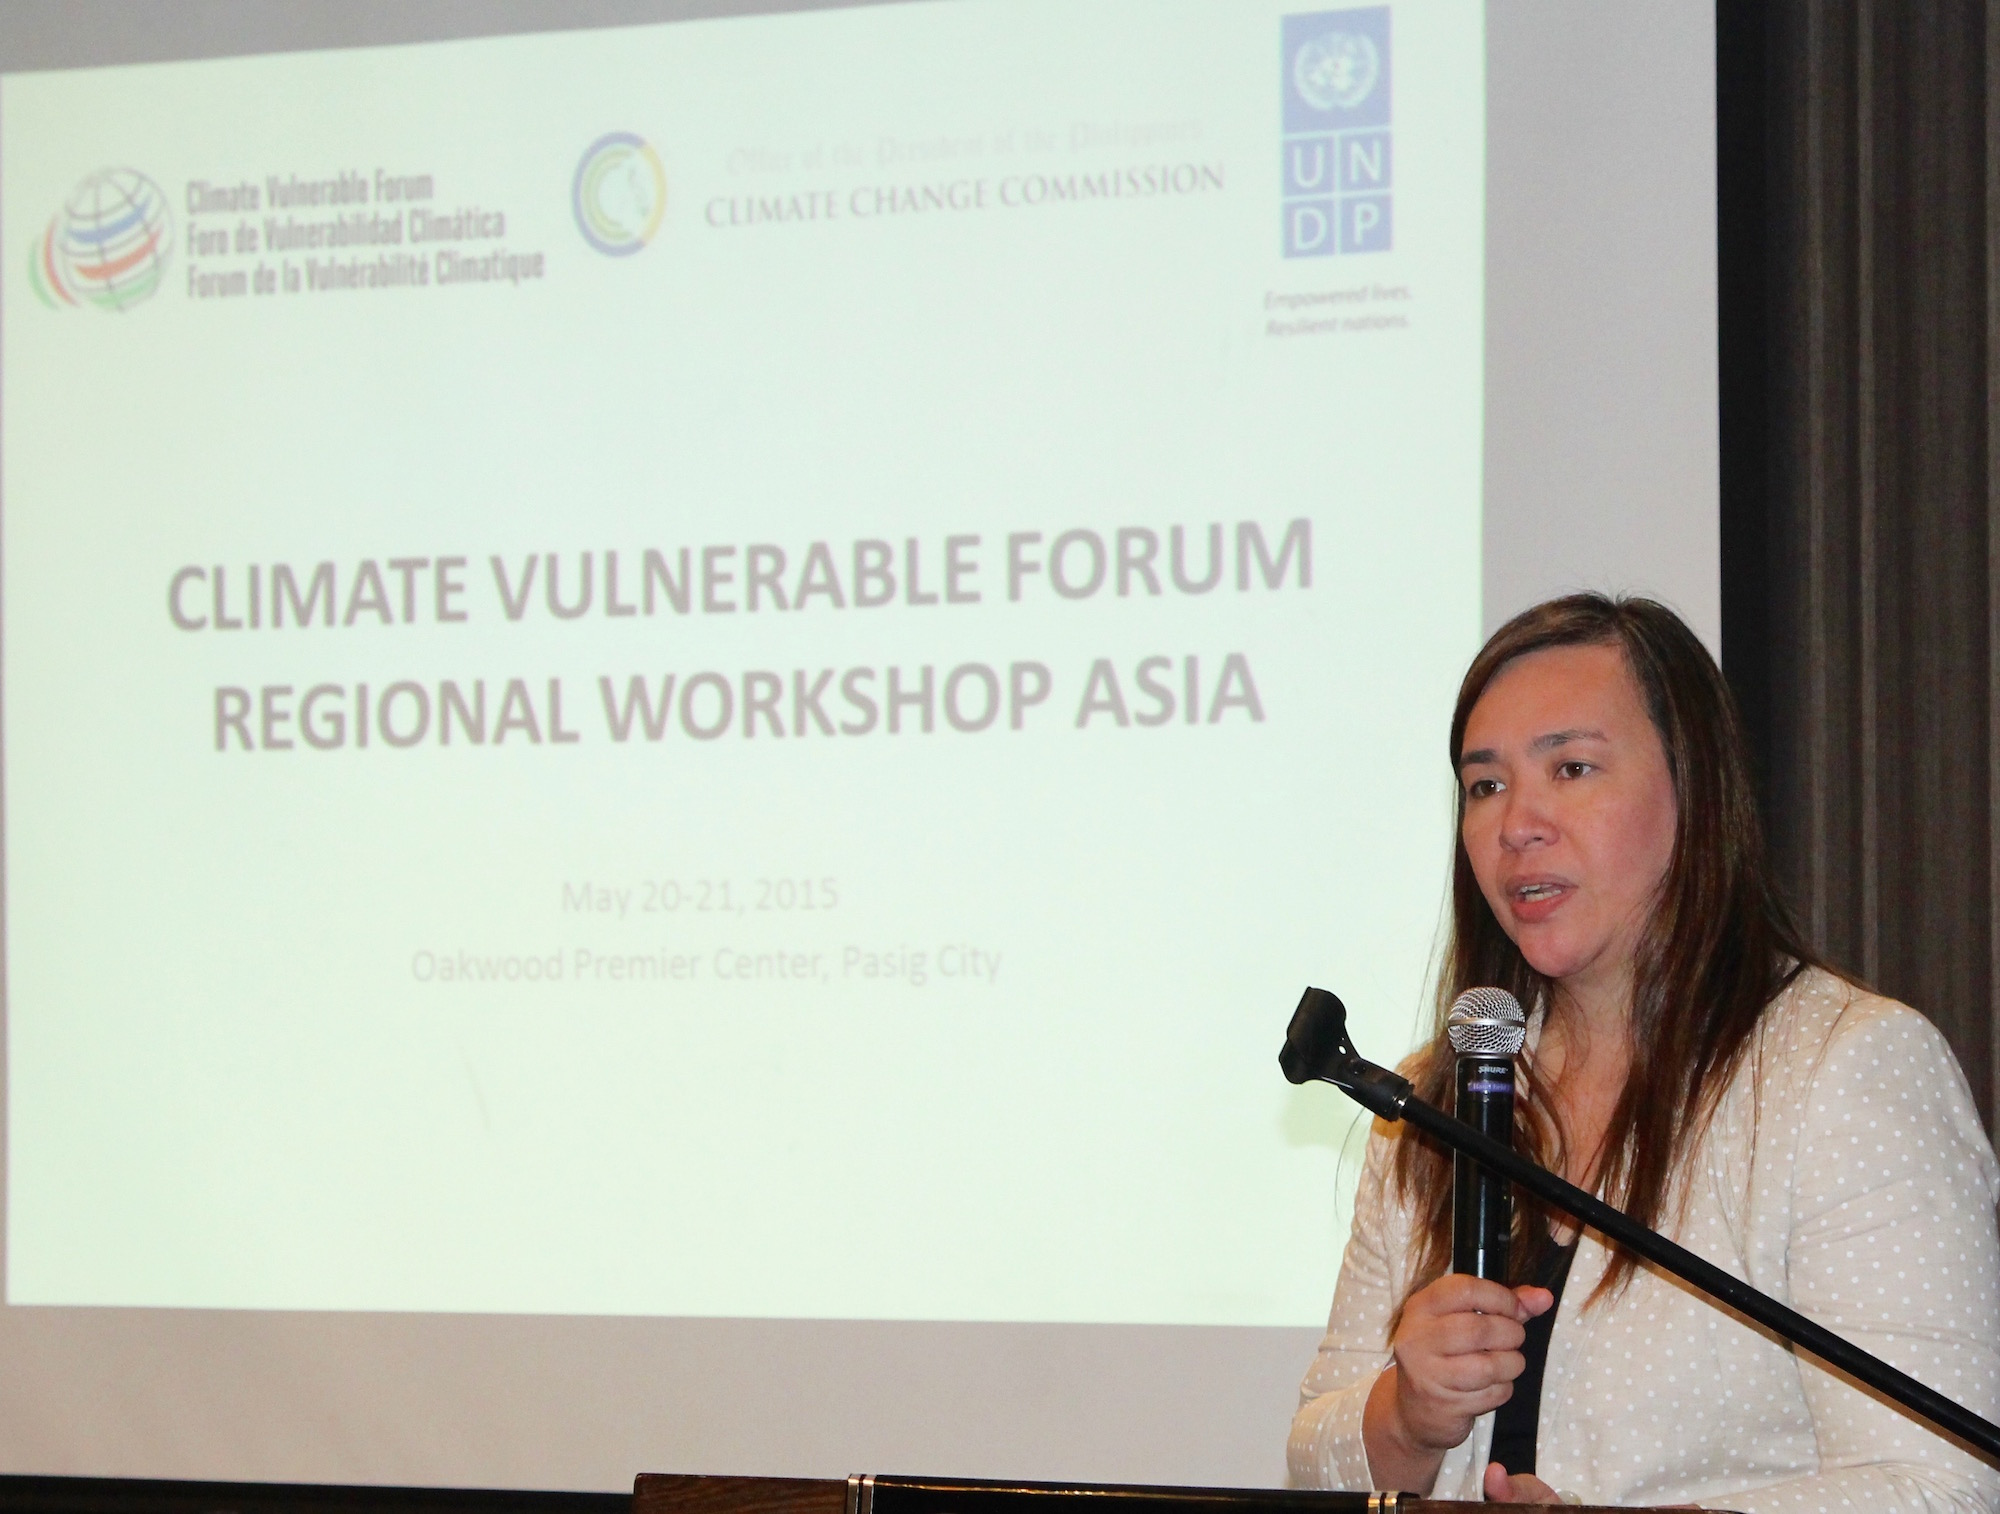 Lucille Sering Closing Asia CVF Regional Workshop 20-21 May 2015 Manila, Philippines - source: CCCPH/CVF license: CC